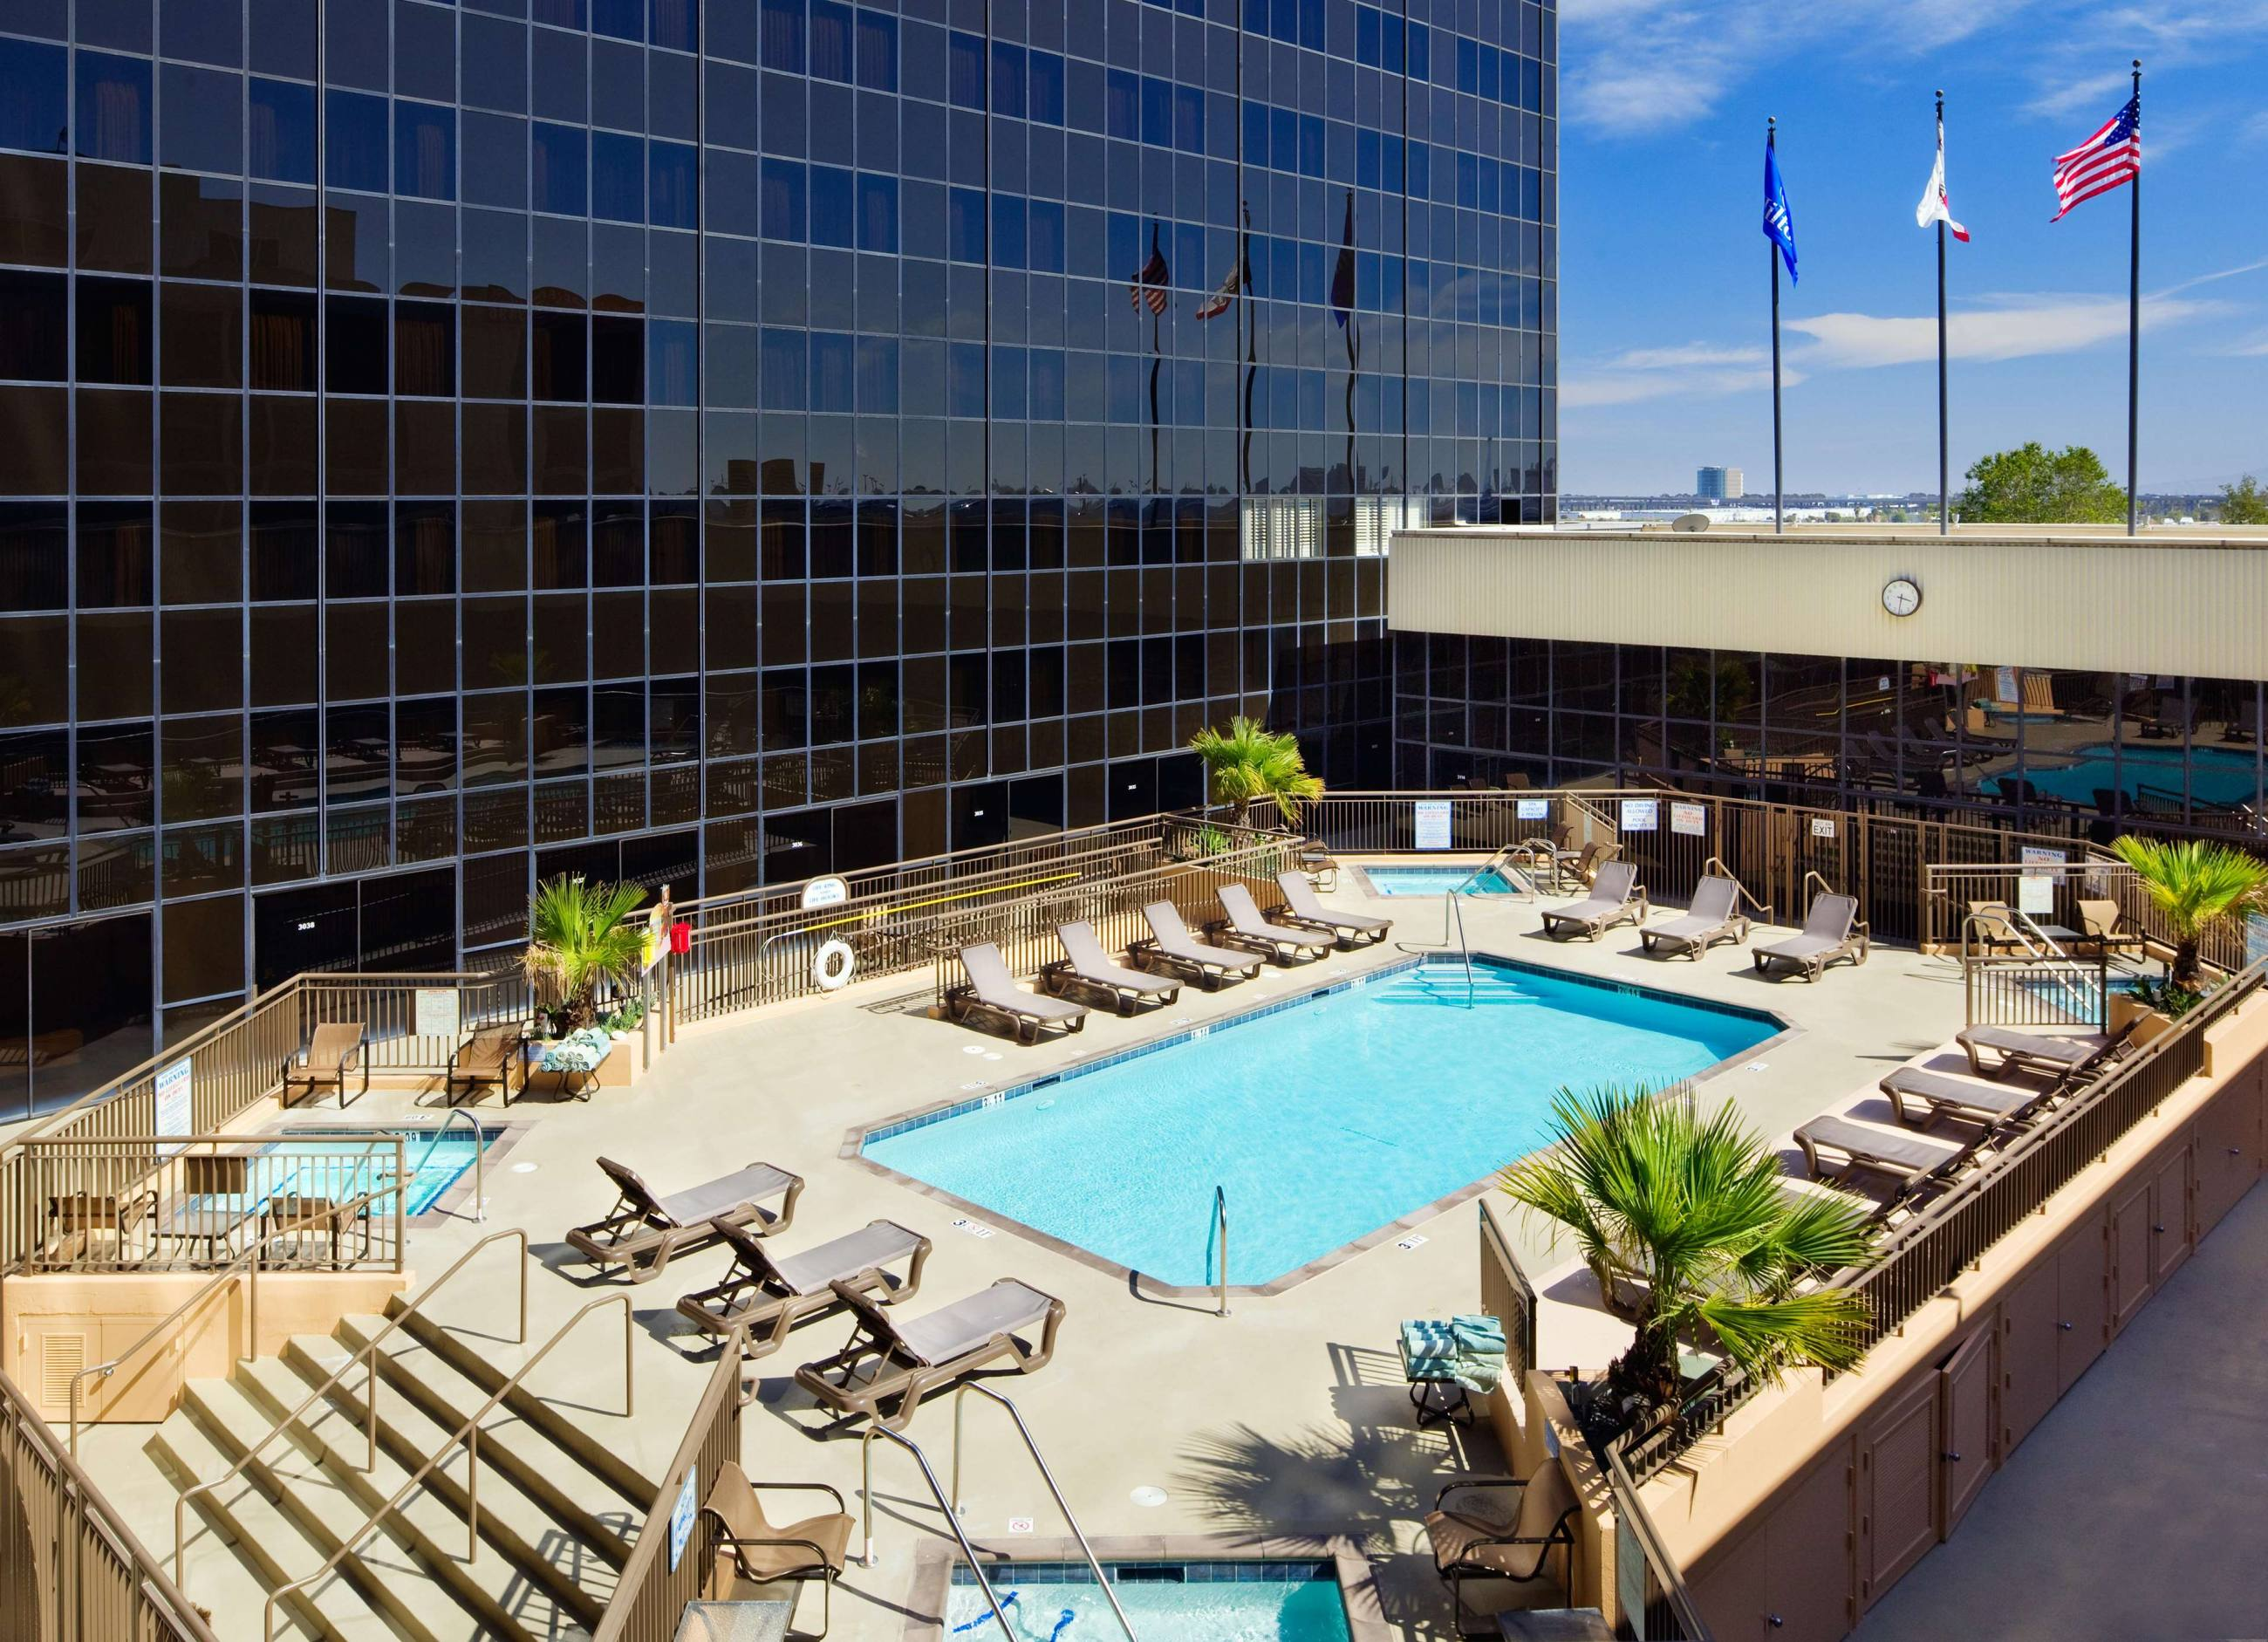 Third floor pool at the Hilton Los Angeles Airport